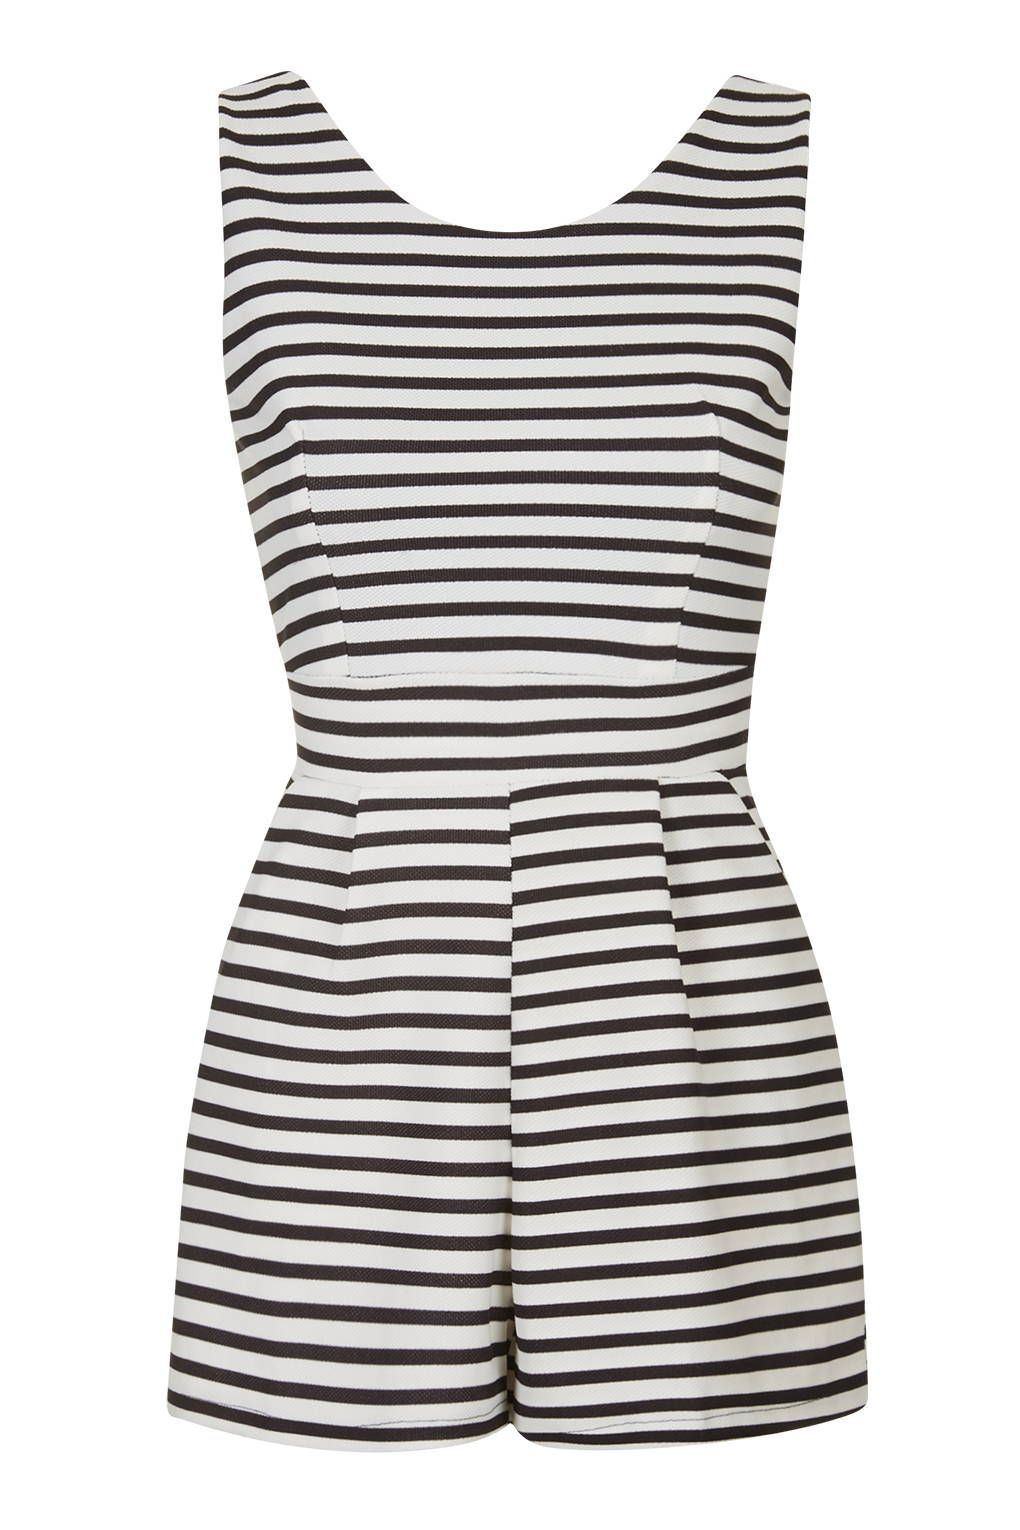 e4dafc2a5b3   Sleeveless Stripe Playsuit by Wal G - New In This Week - New In - Topshop